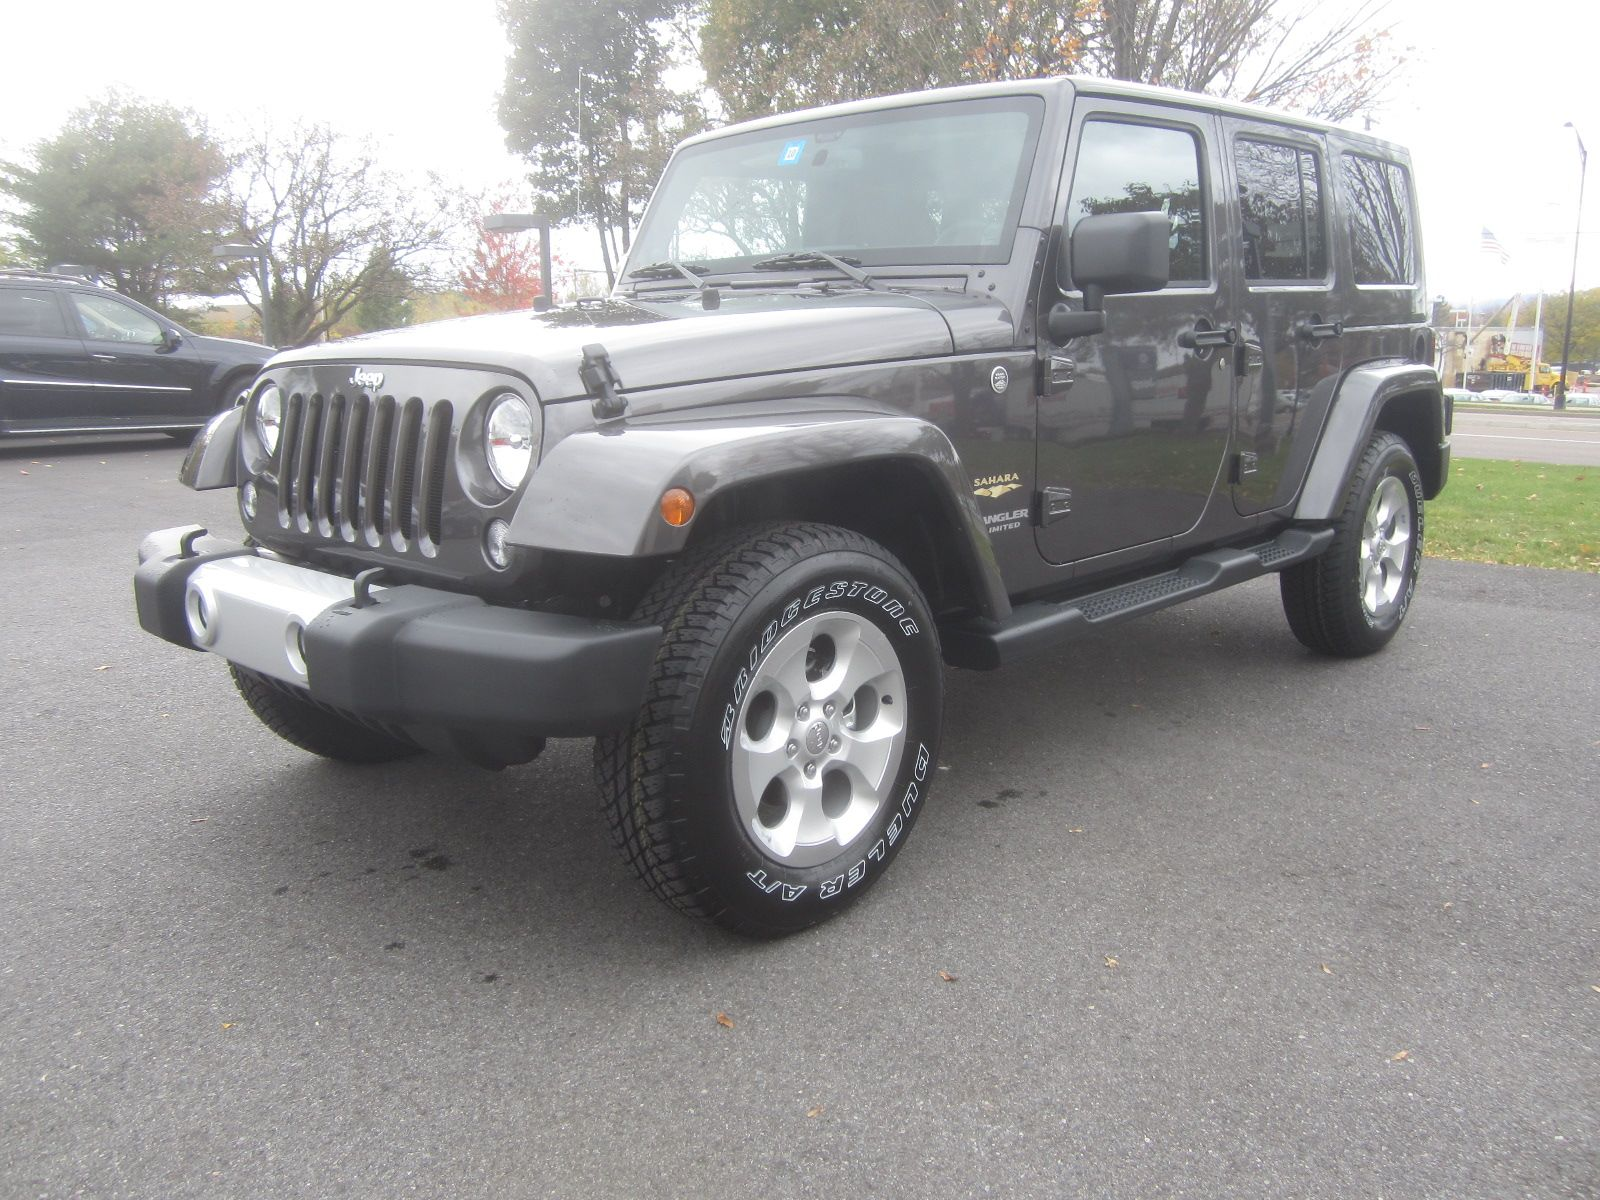 4 Door Sahara In Granite 4 Door Jeep Wrangler 2014 Jeep